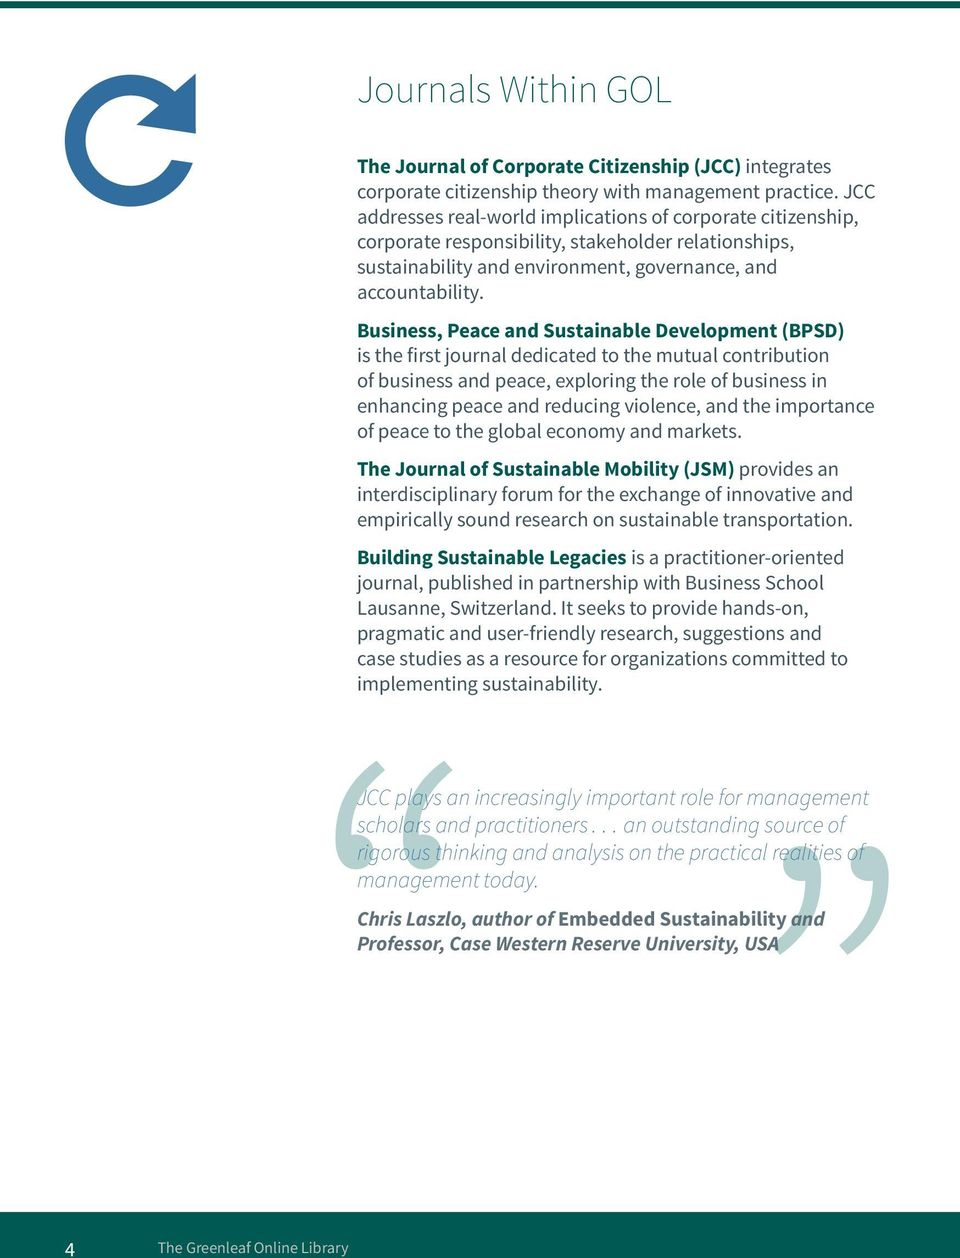 Business, Peace and Sustainable Development (BPSD) is the first journal dedicated to the mutual contribution of business and peace, exploring the role of business in enhancing peace and reducing